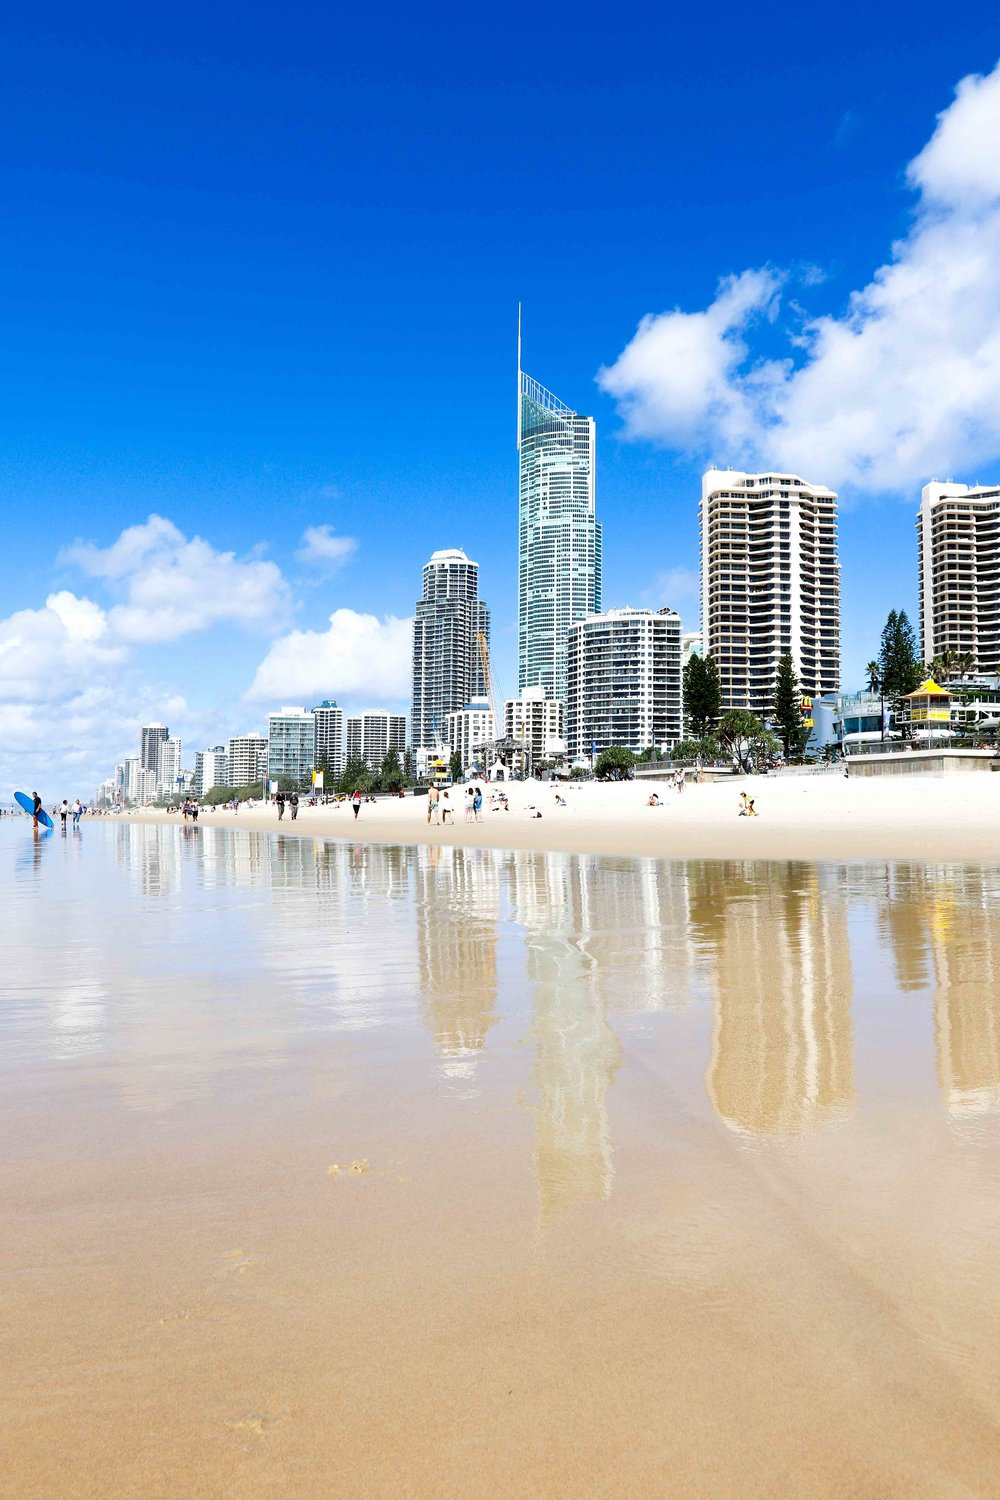 Gold coast australia piers haskard including sky scrapers built into the dunes of this coast and endless beaches stretching in each direction creates some unique beach scenes voltagebd Images